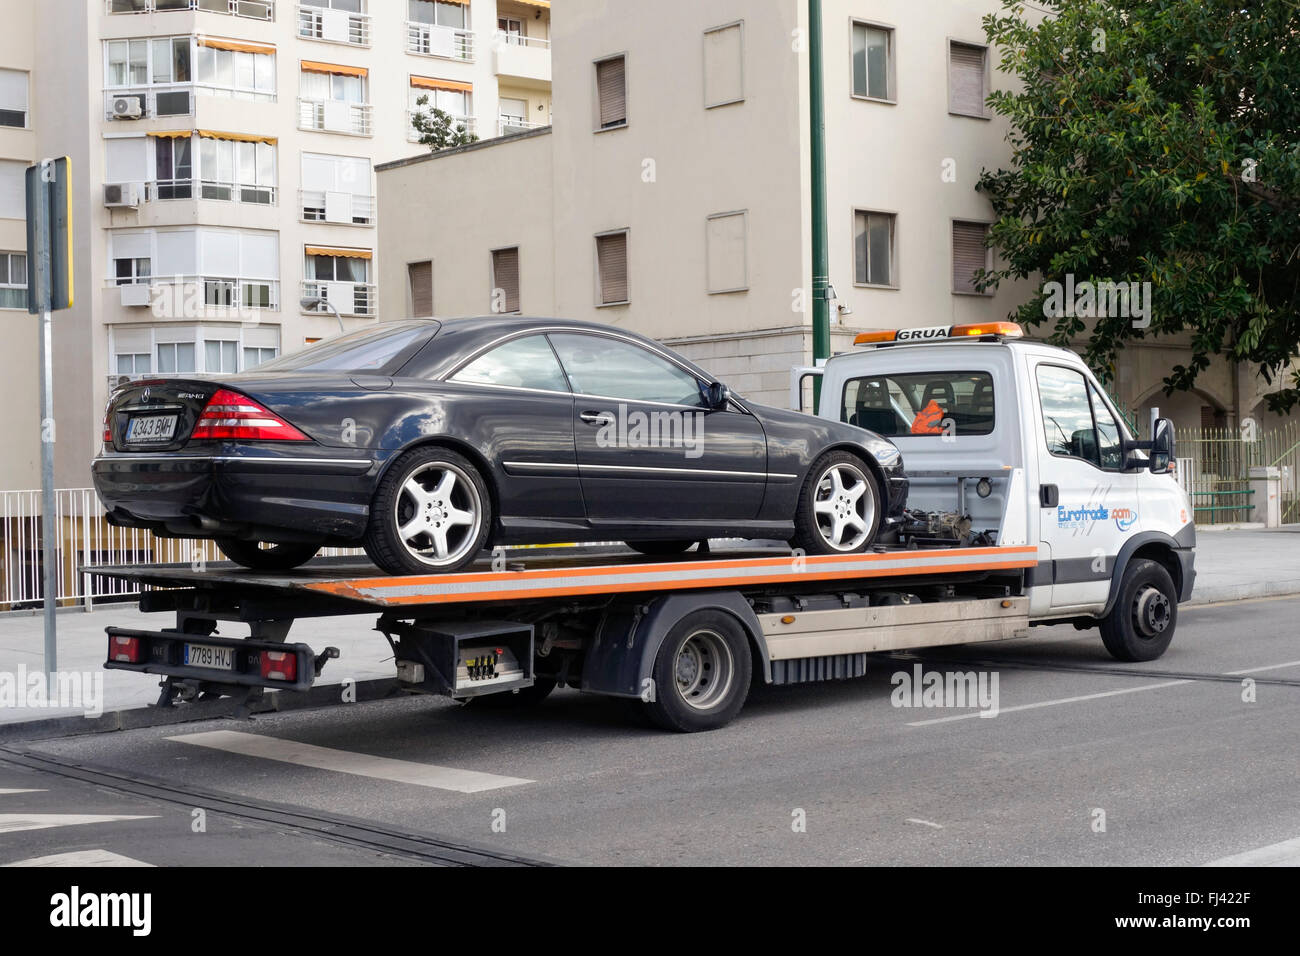 Luxury car on flatbed tow truck spain stock image